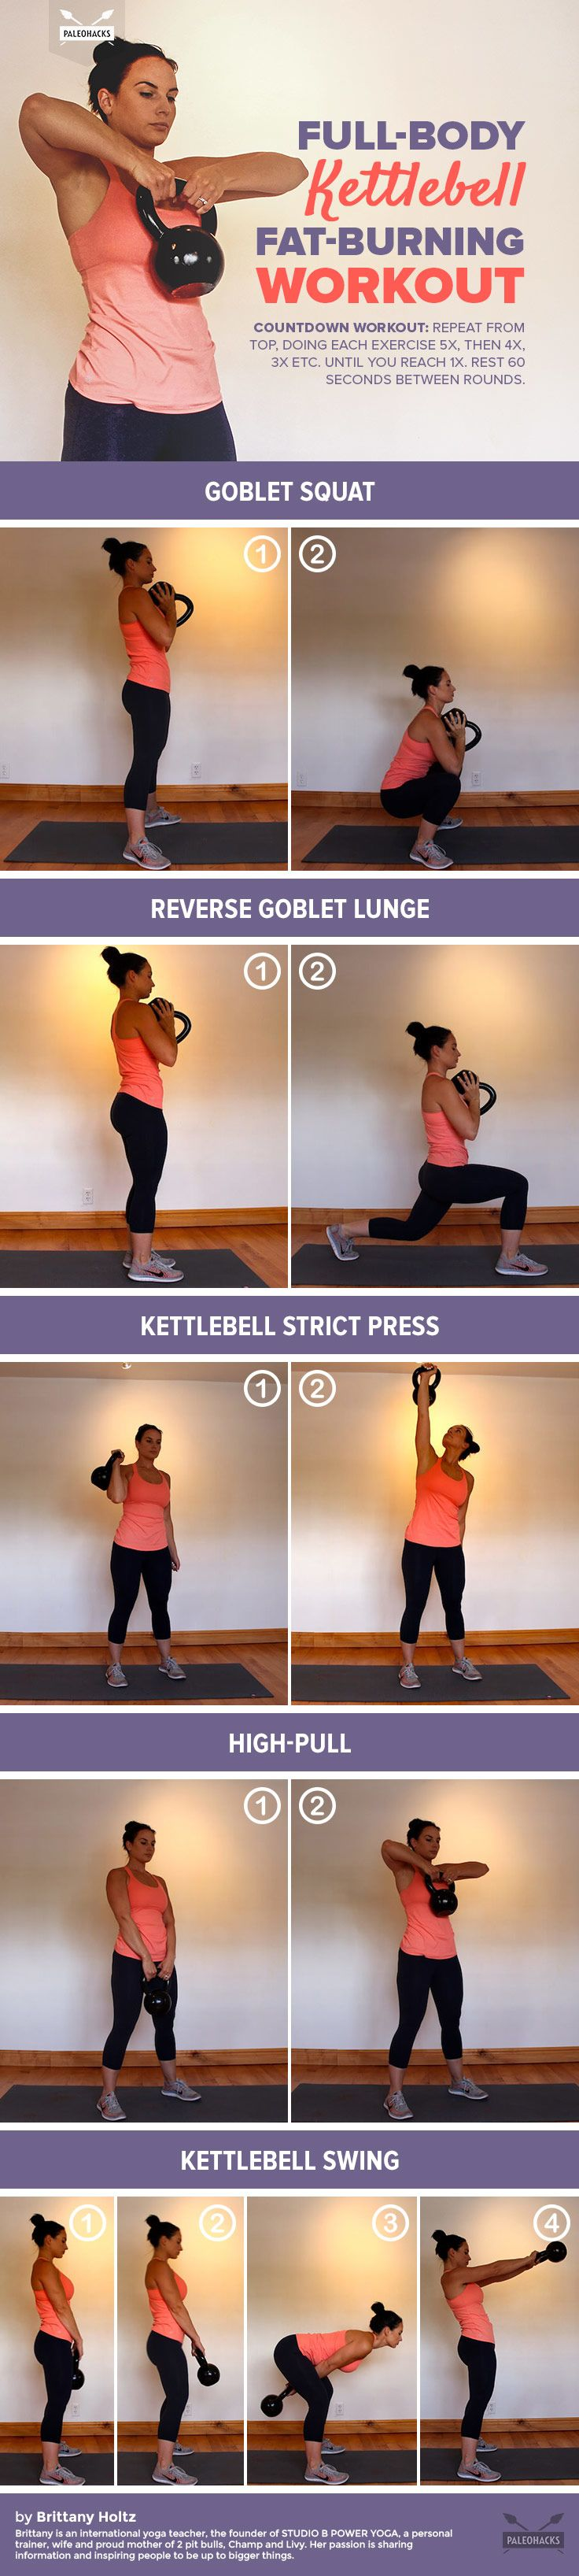 Full Body Kettlebell Fat Burning Workout